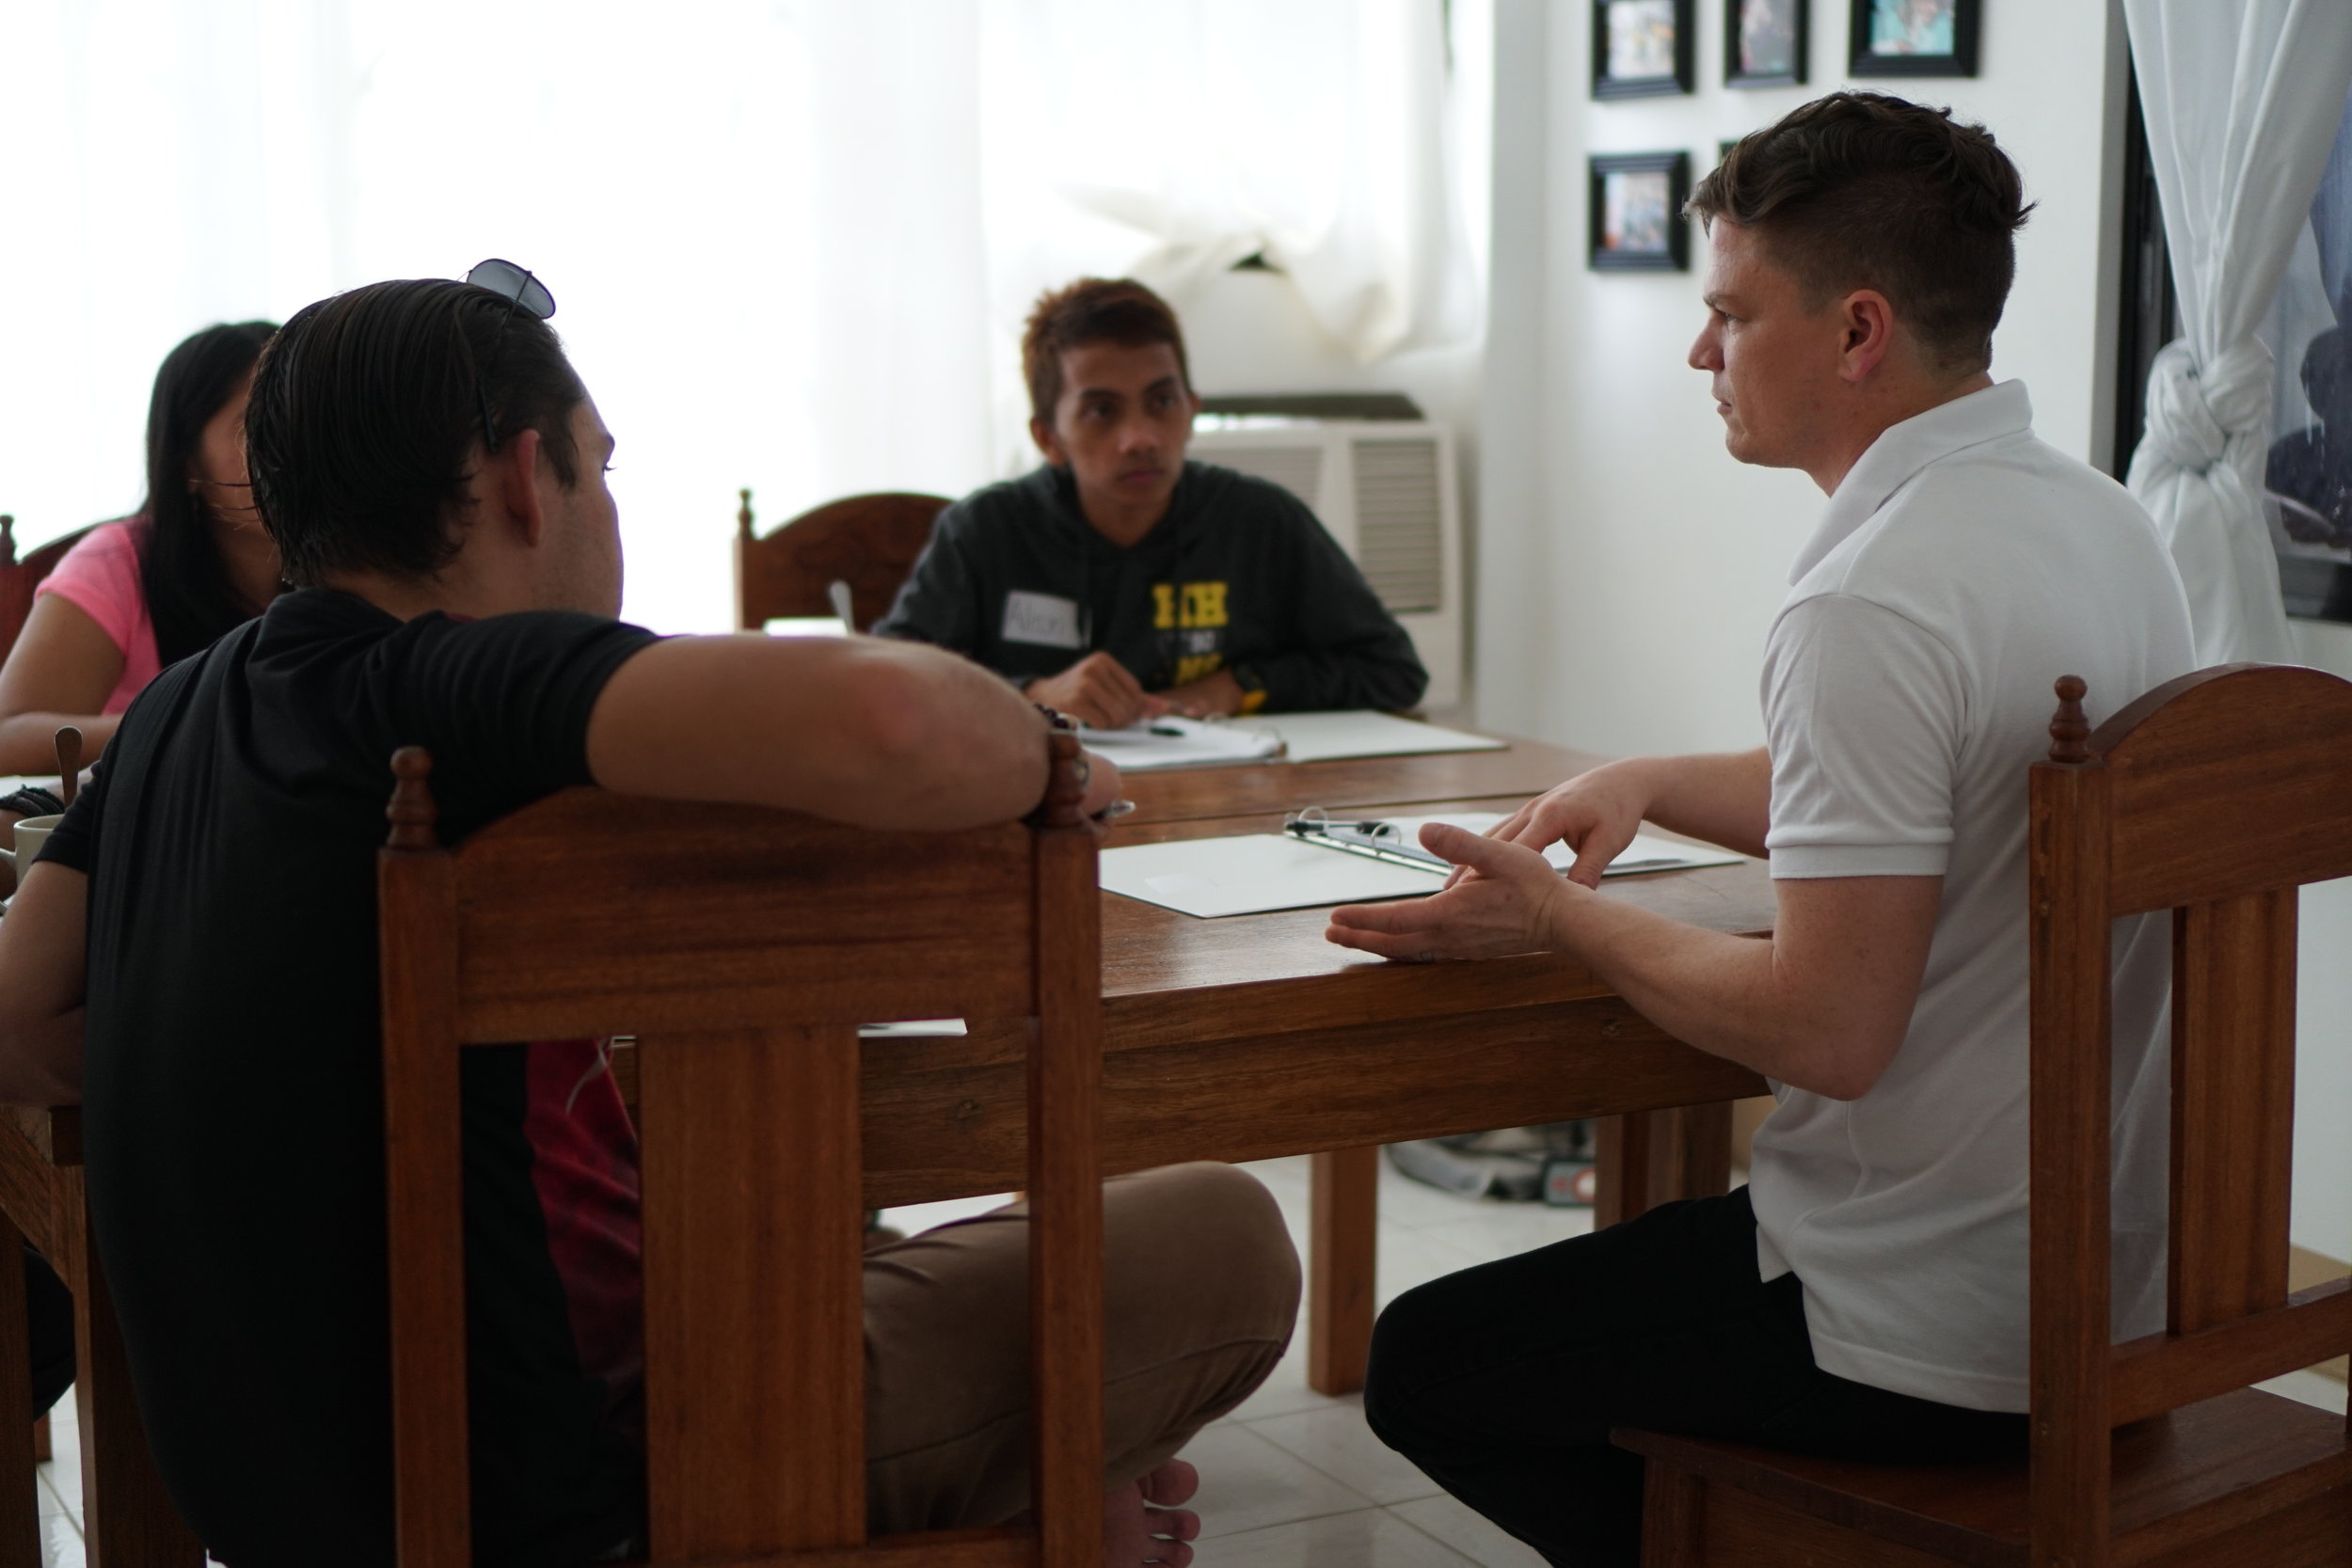 Jason Carpenter spends time with youth leaders in a small group breakout session during our Biblical Studies Seminar.